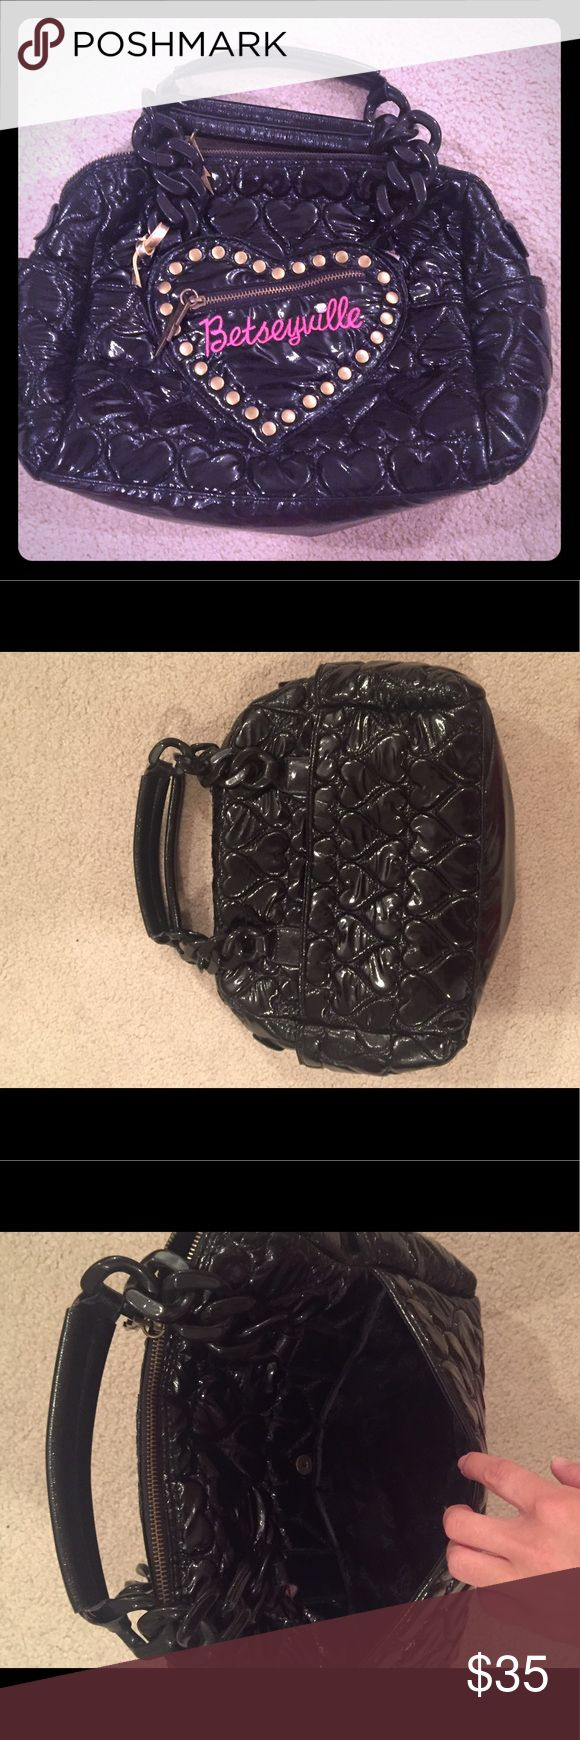 Betsey Johnson Betseyville Bag Worn Once. Lining is clean with no tears. Very unique! Betsey Johnson Bags